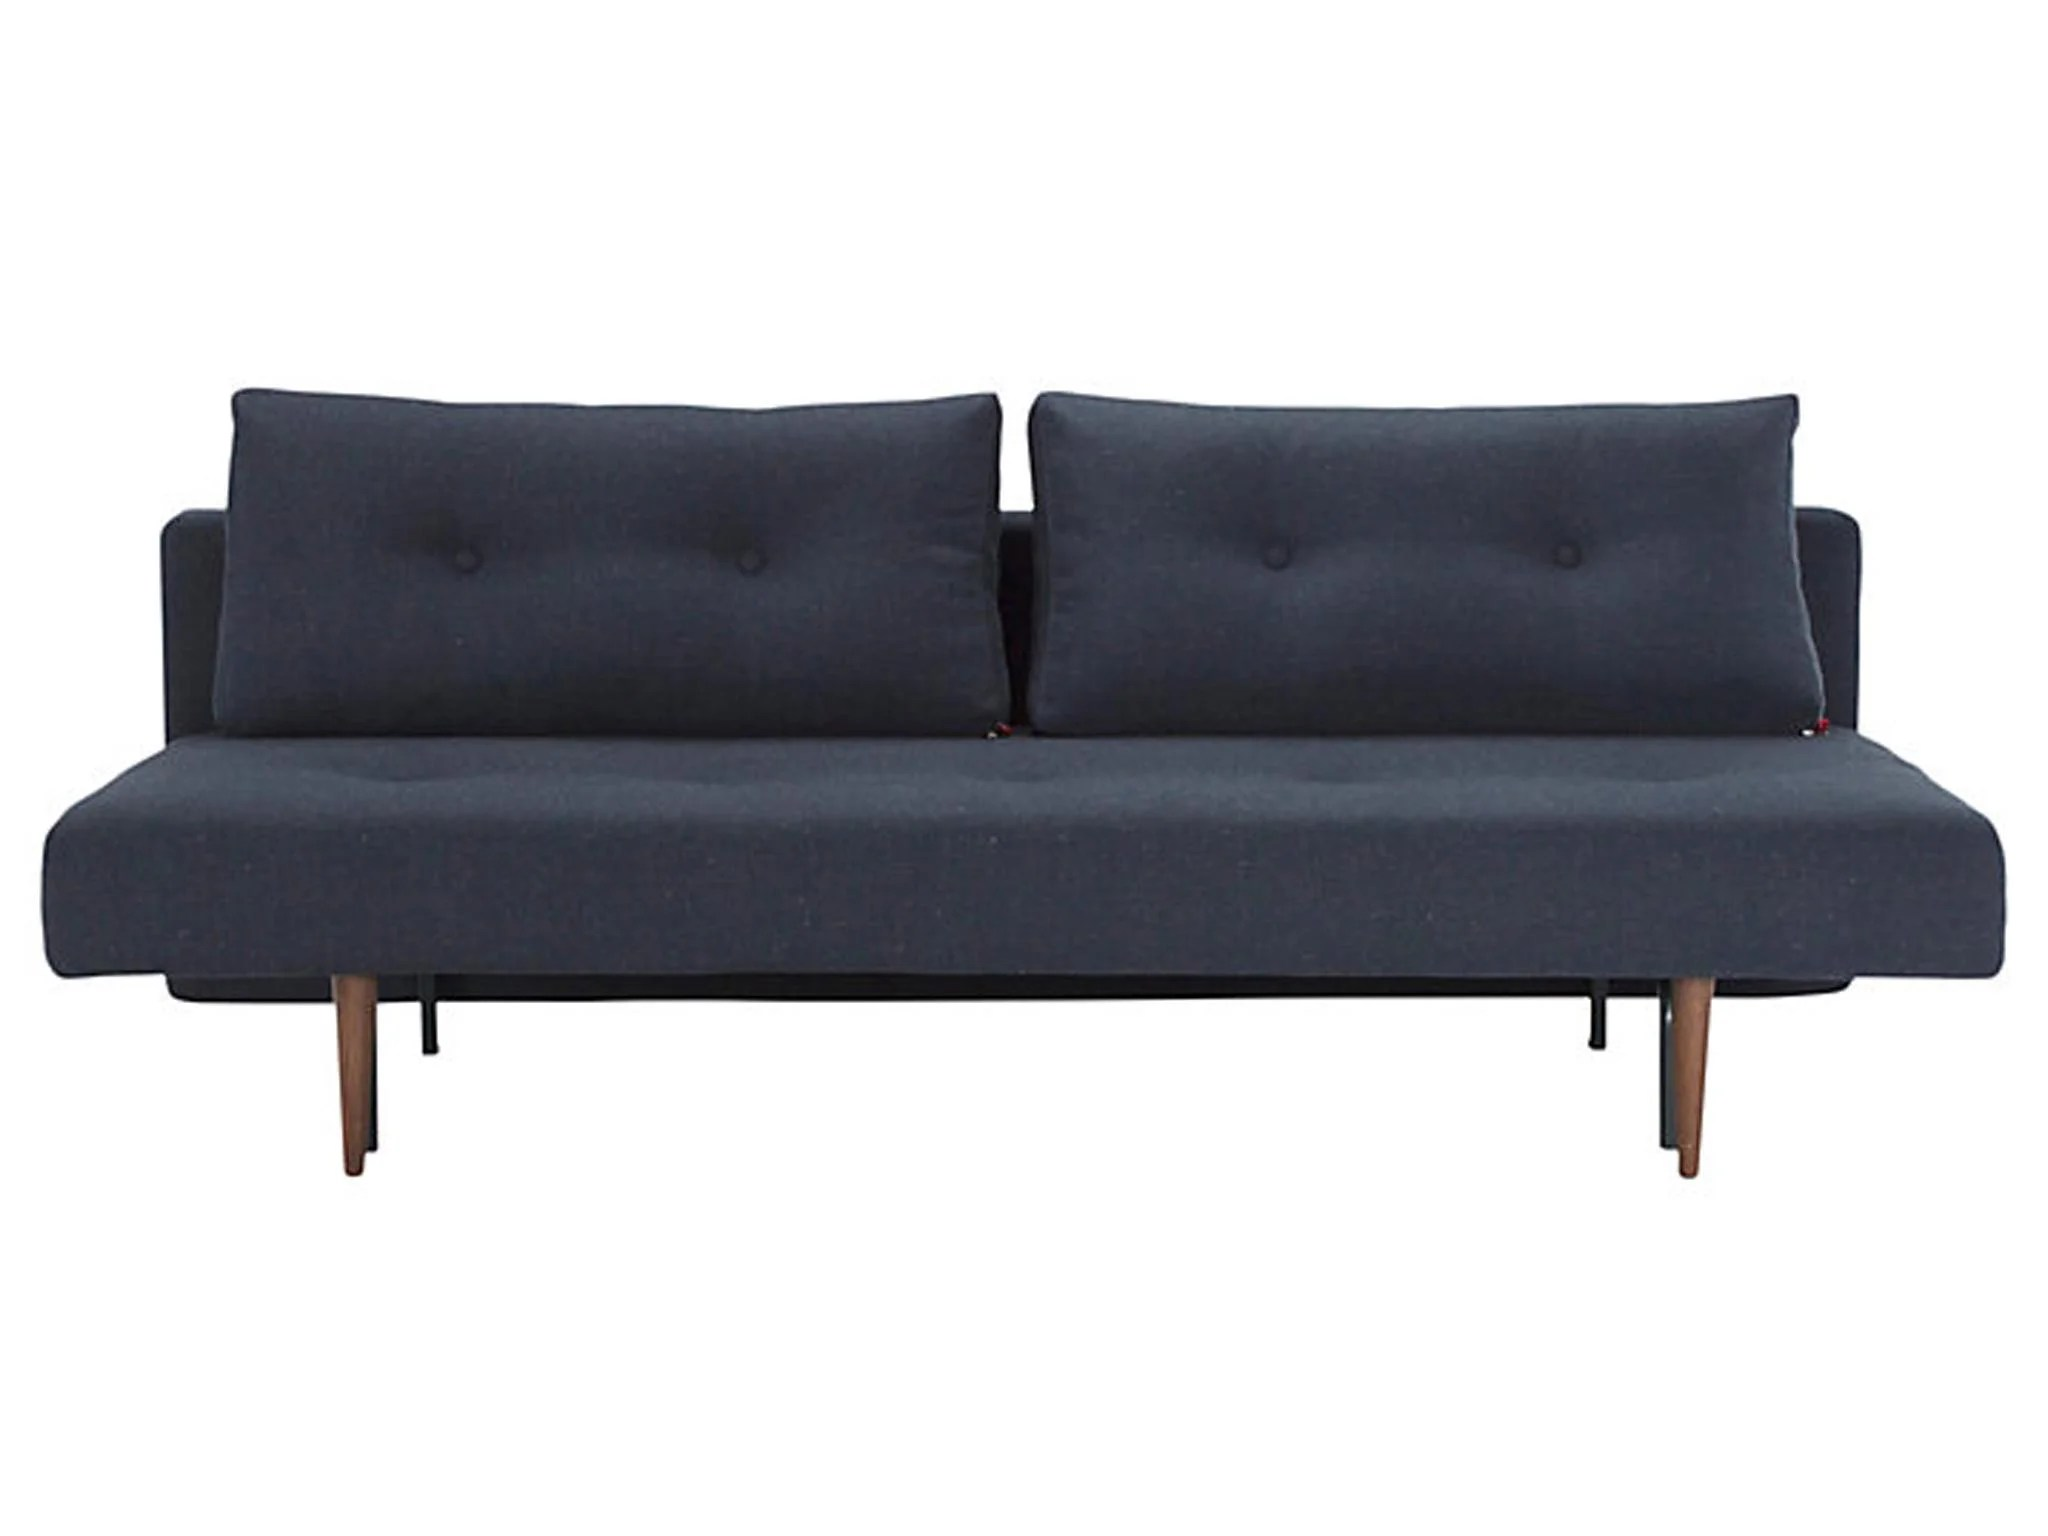 sofa beds uk mini set images 12 best the independent designed and made in denmark this stylish bed opens out by pulling base dropping back when flat it gives a spacious sleeping area of